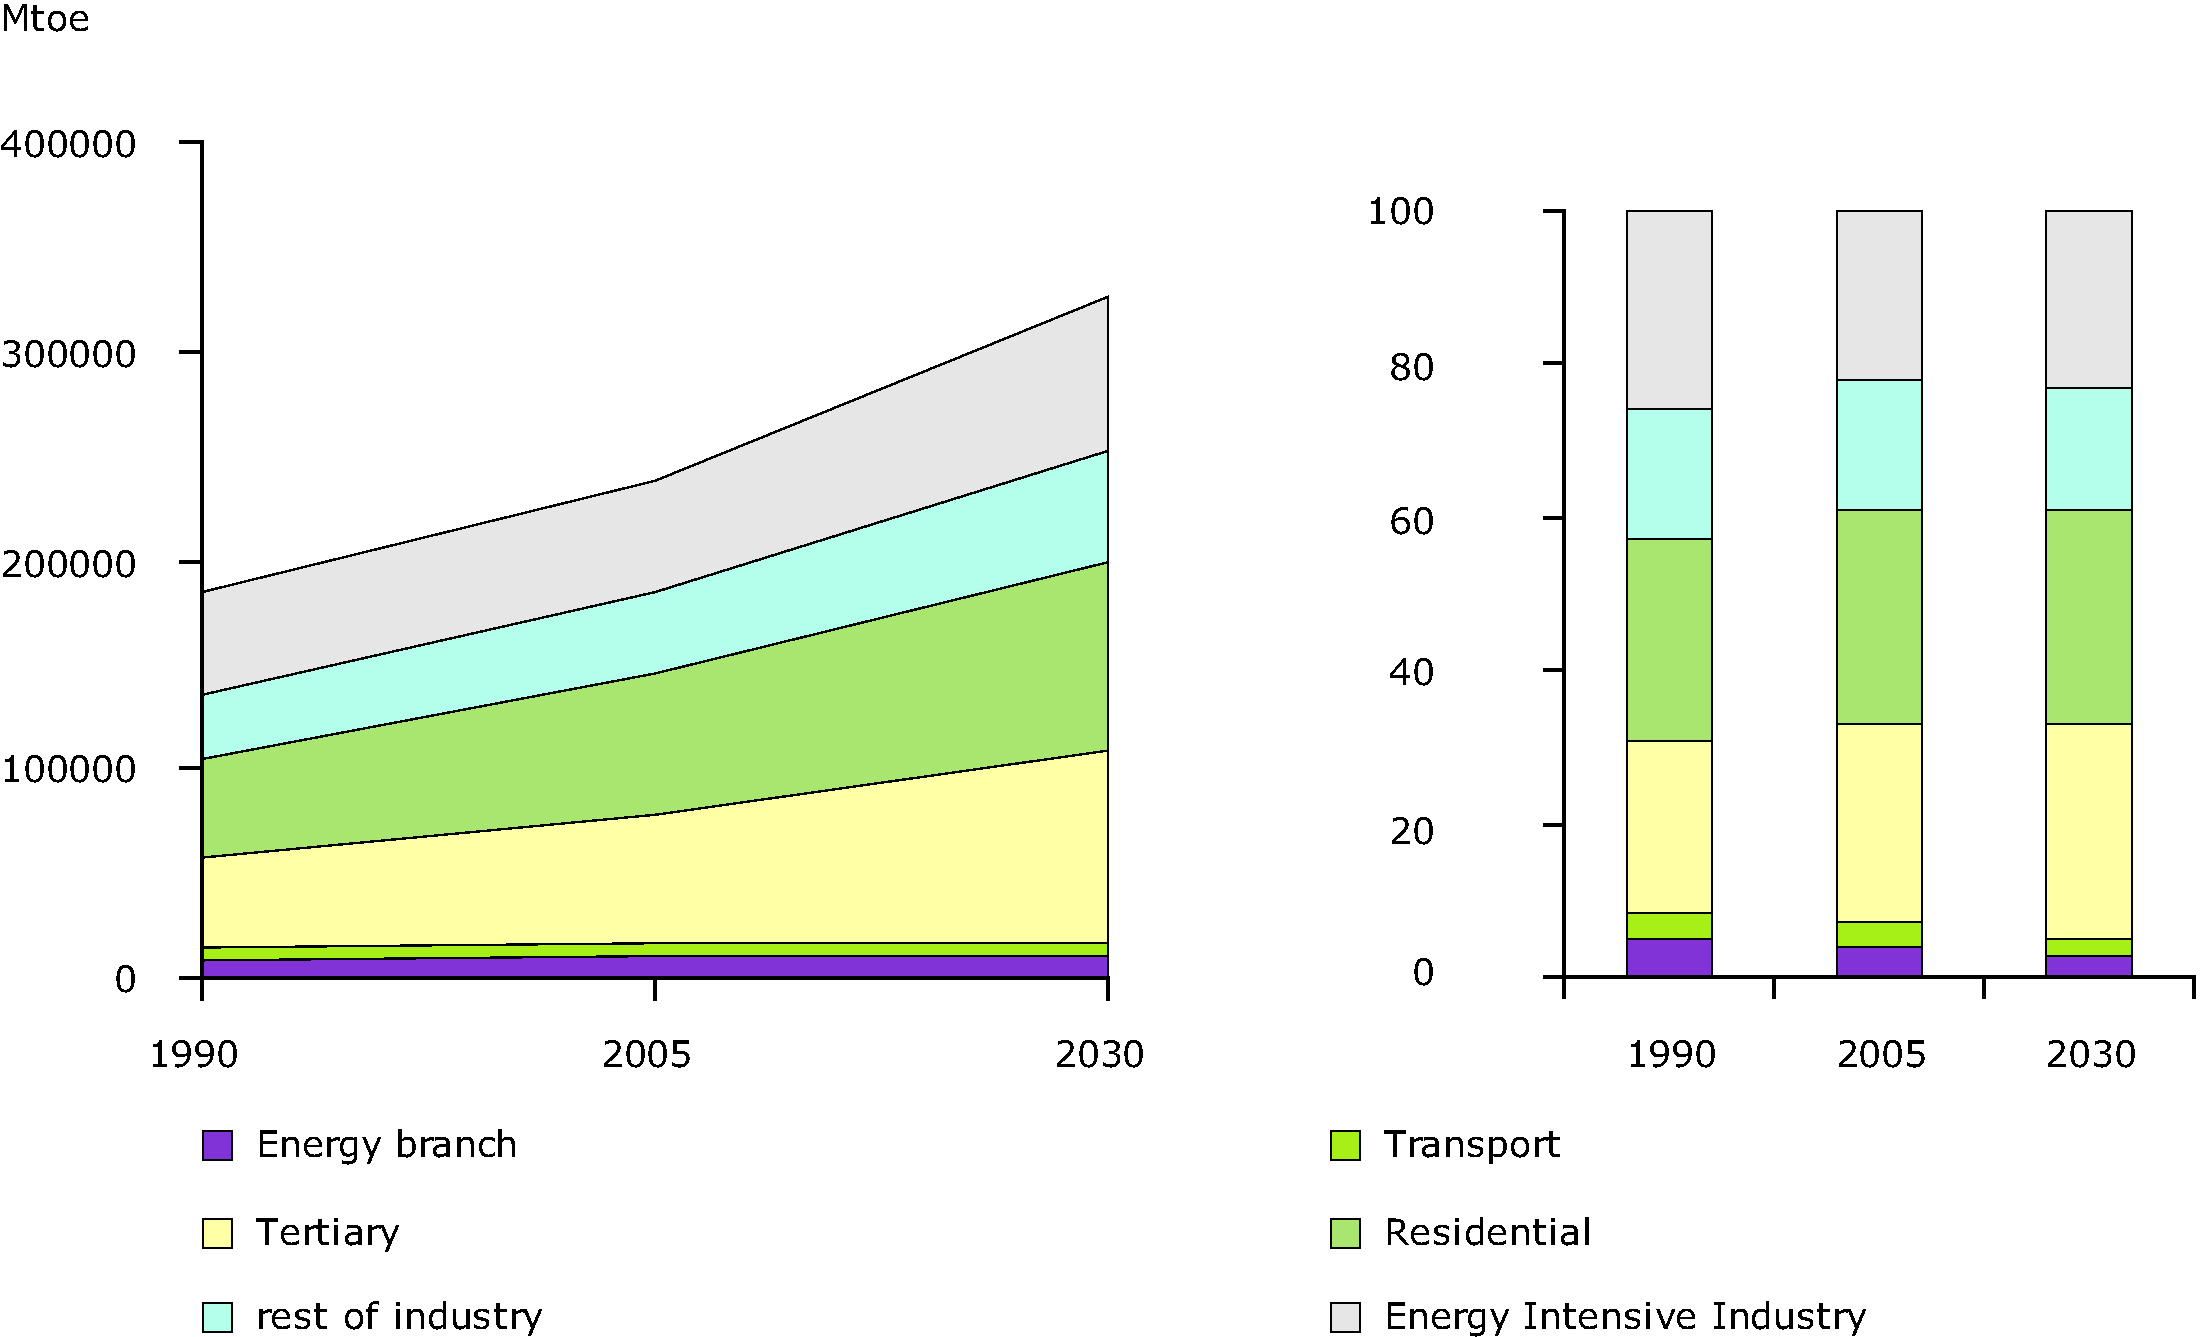 Electricity consumption by sector in the EU 27, 1990-2030